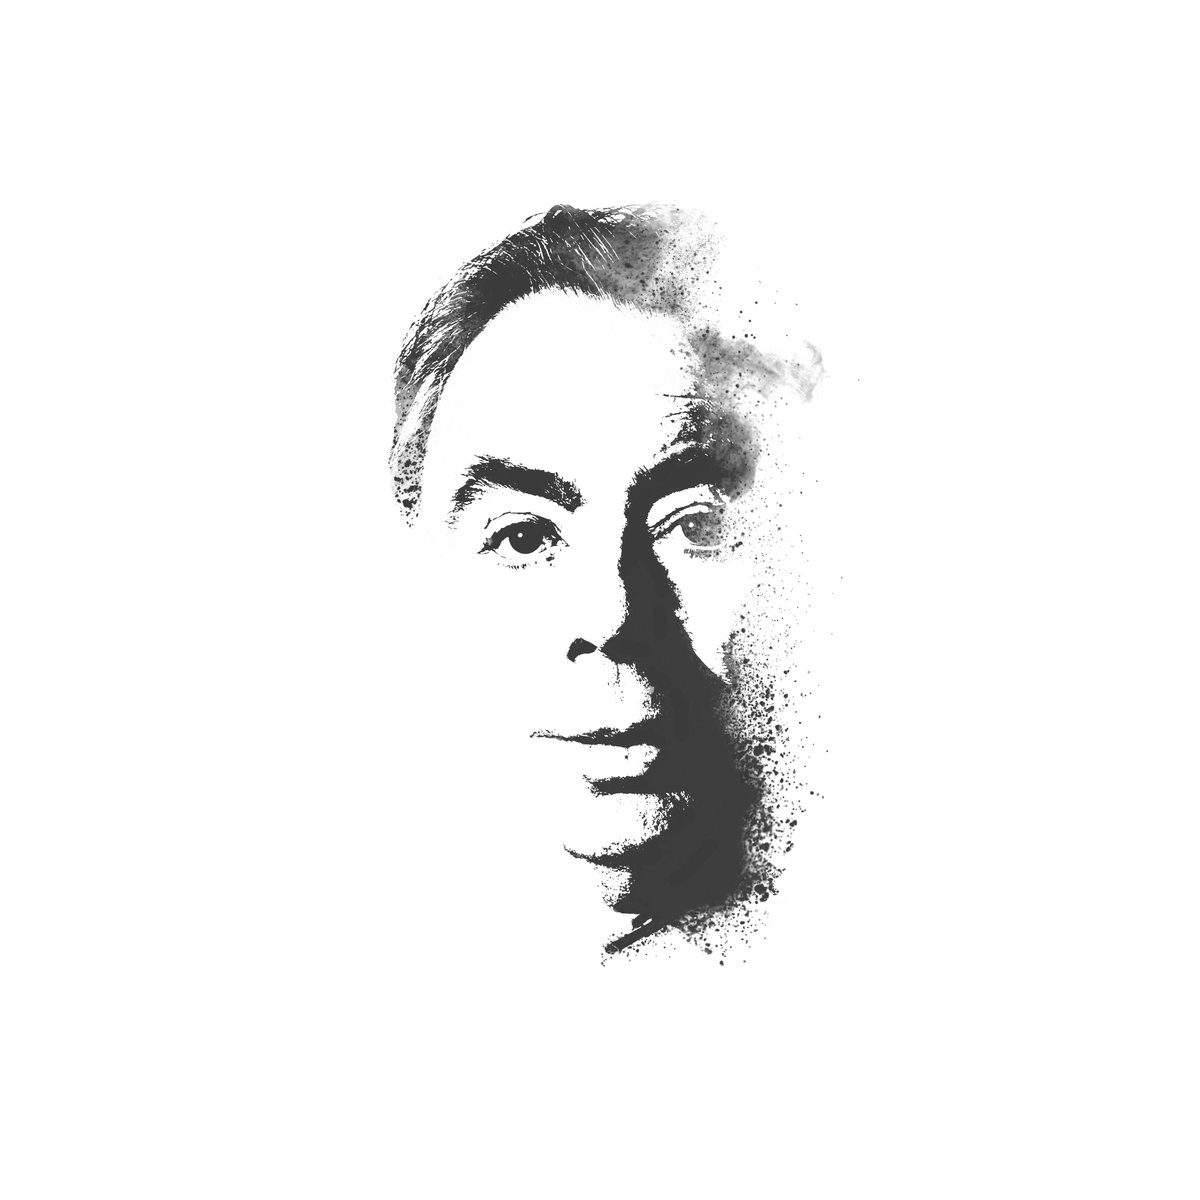 March 2018 will see the release of 'Unmasked', Andrew Lloyd Webber's first memoir. Pre order your copy: andrewlloydwebber.com